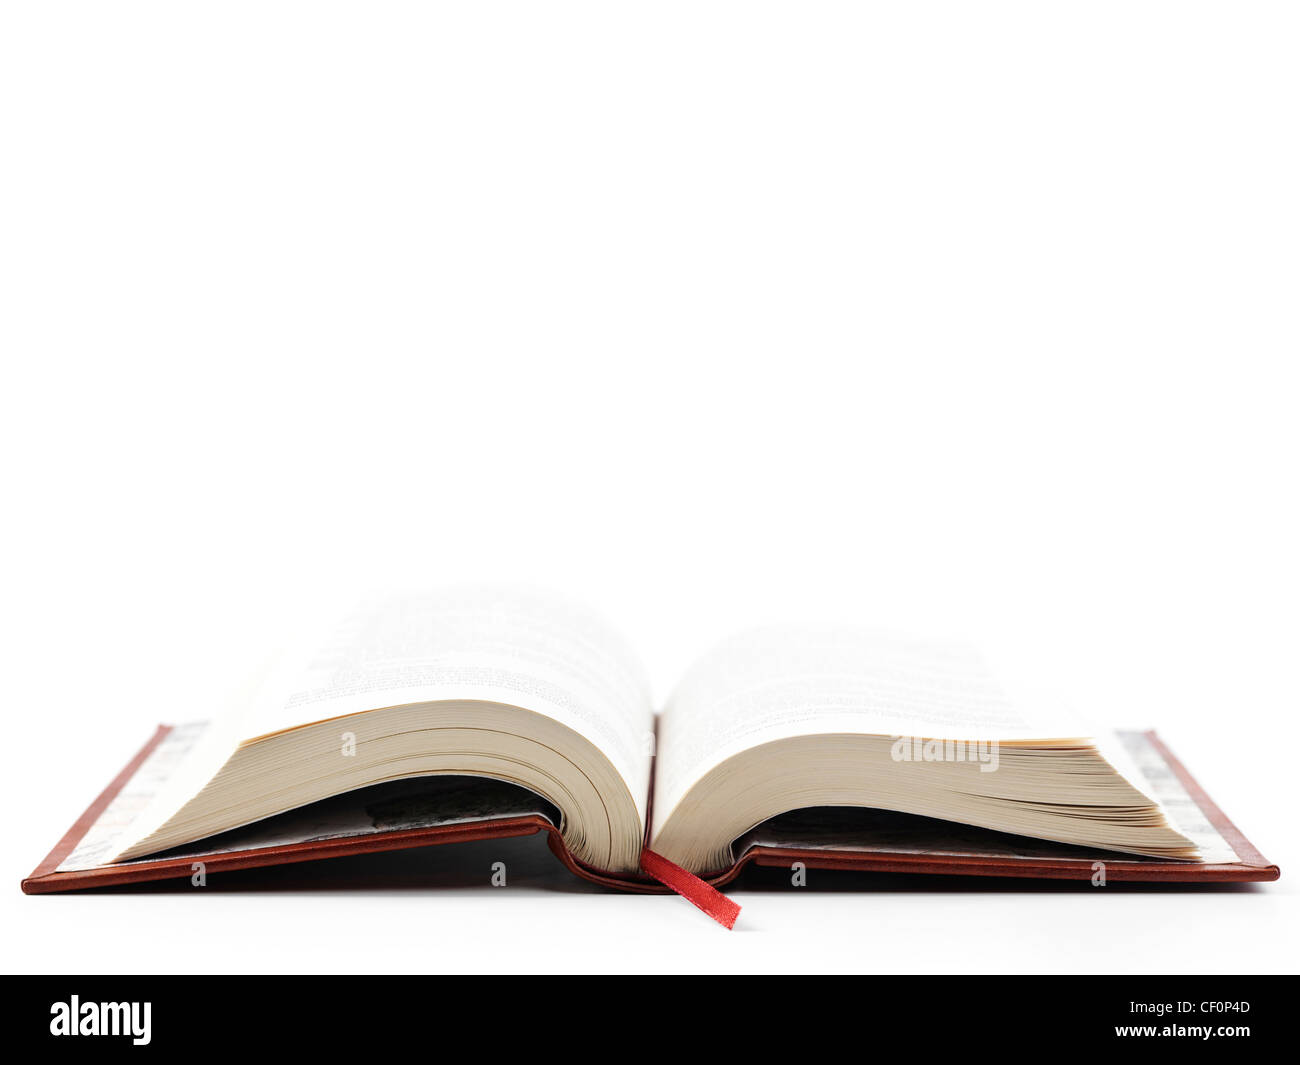 Open hardcover book isoalted on white background - Stock Image